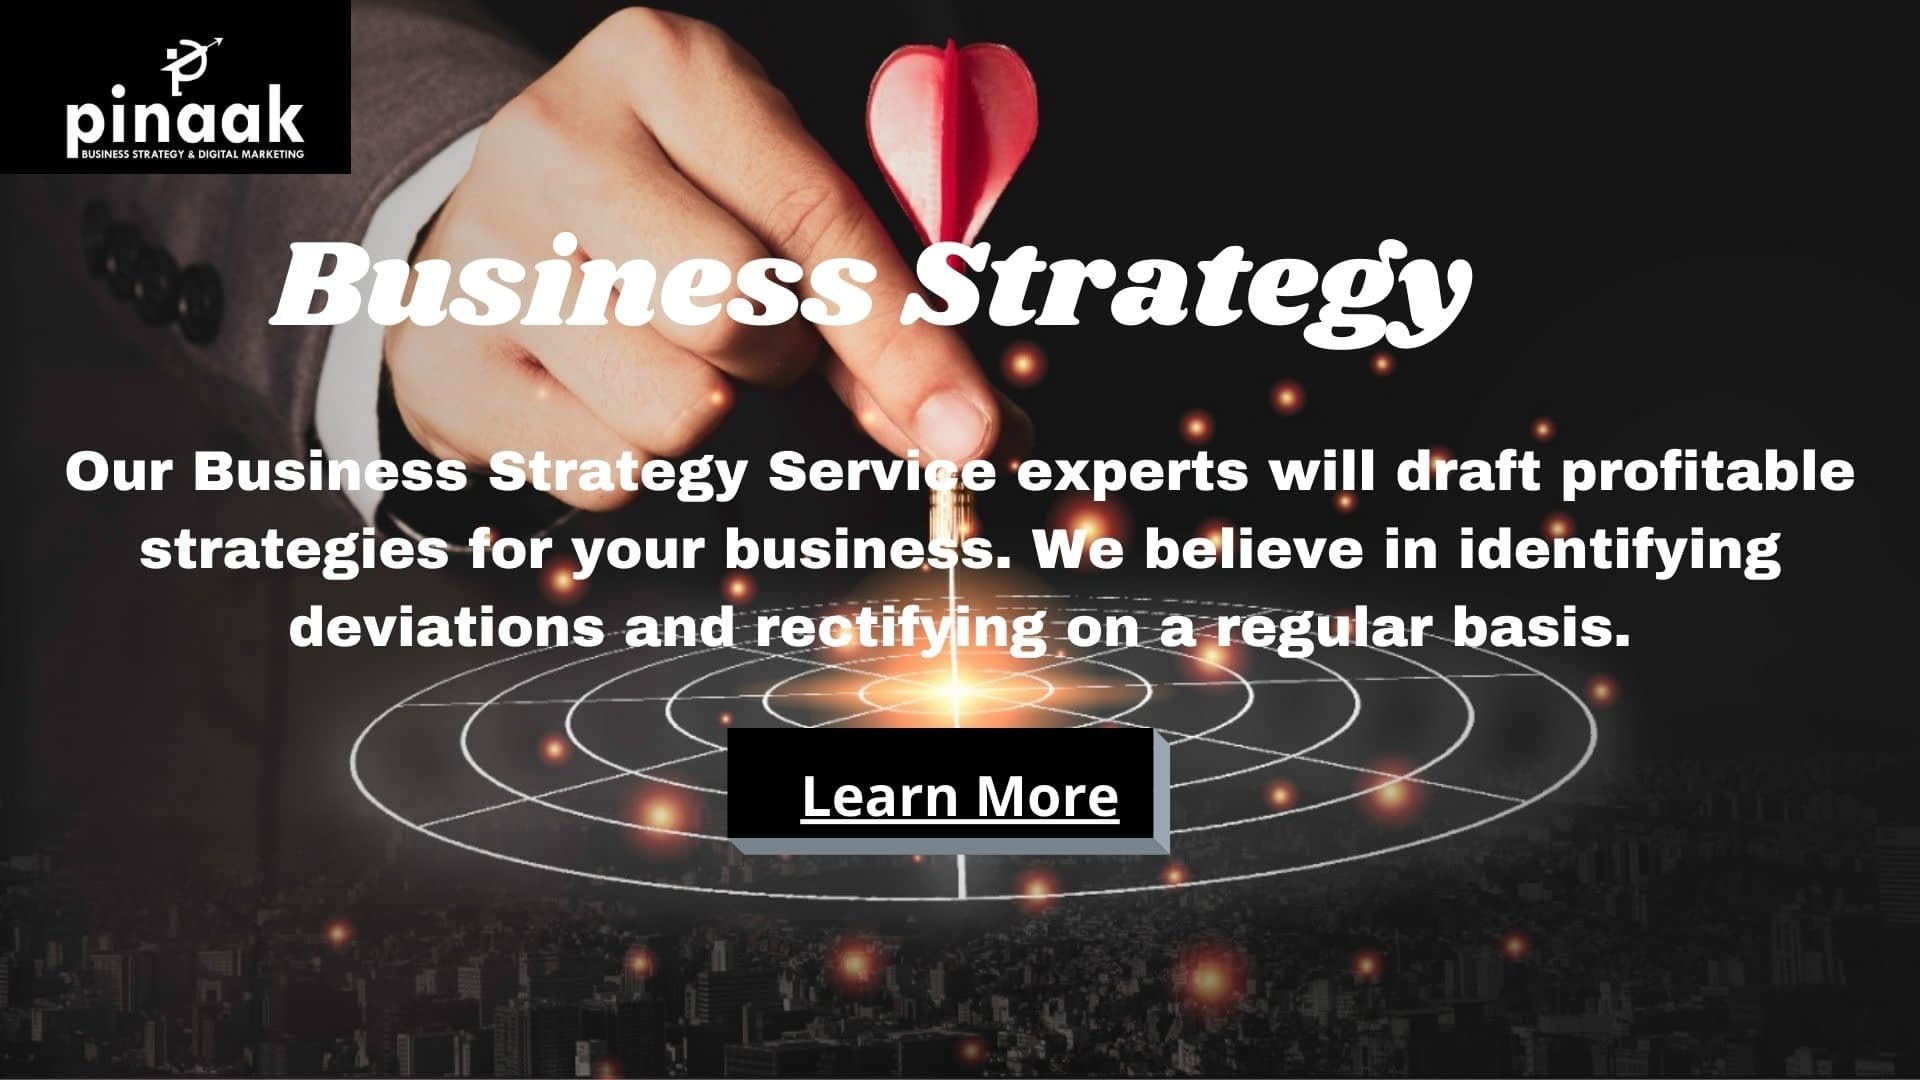 Business Strategy Services